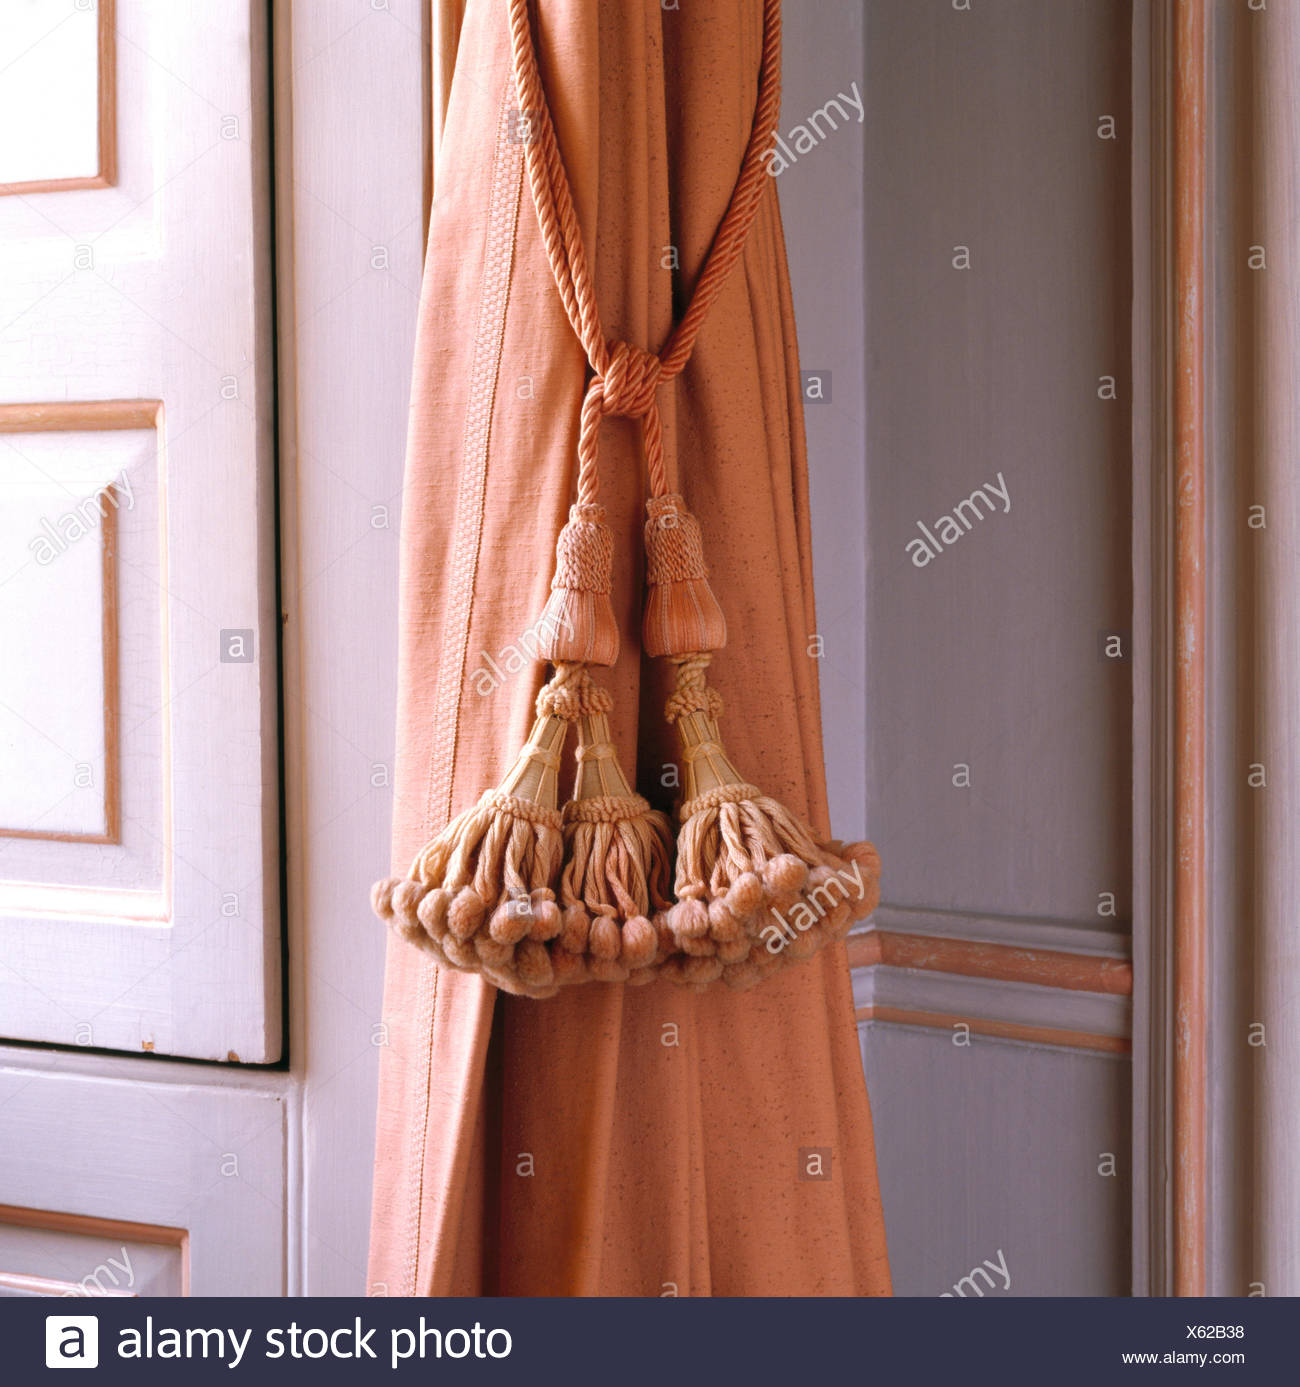 Close-up of peach curtain with toning silk tasseled tie back - Stock Image